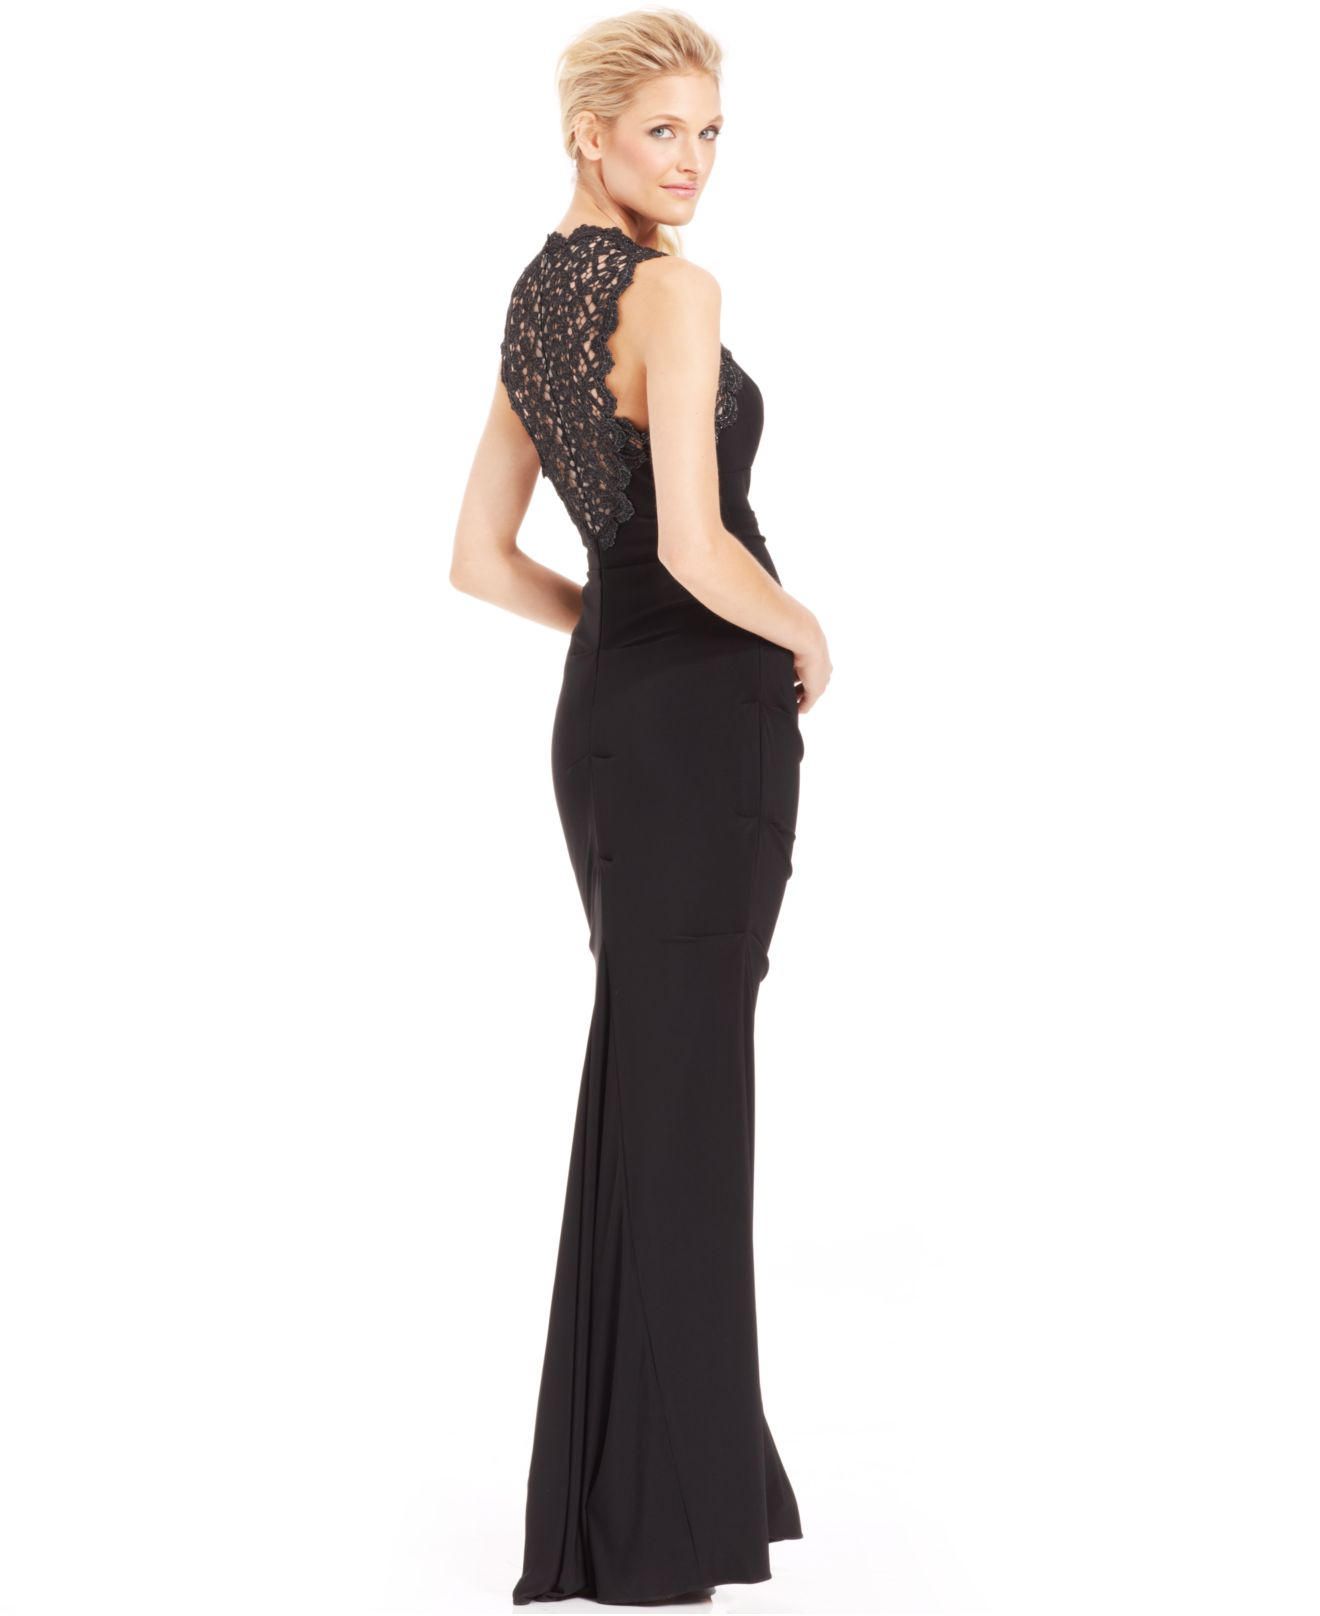 Xscape black lace mermaid dress